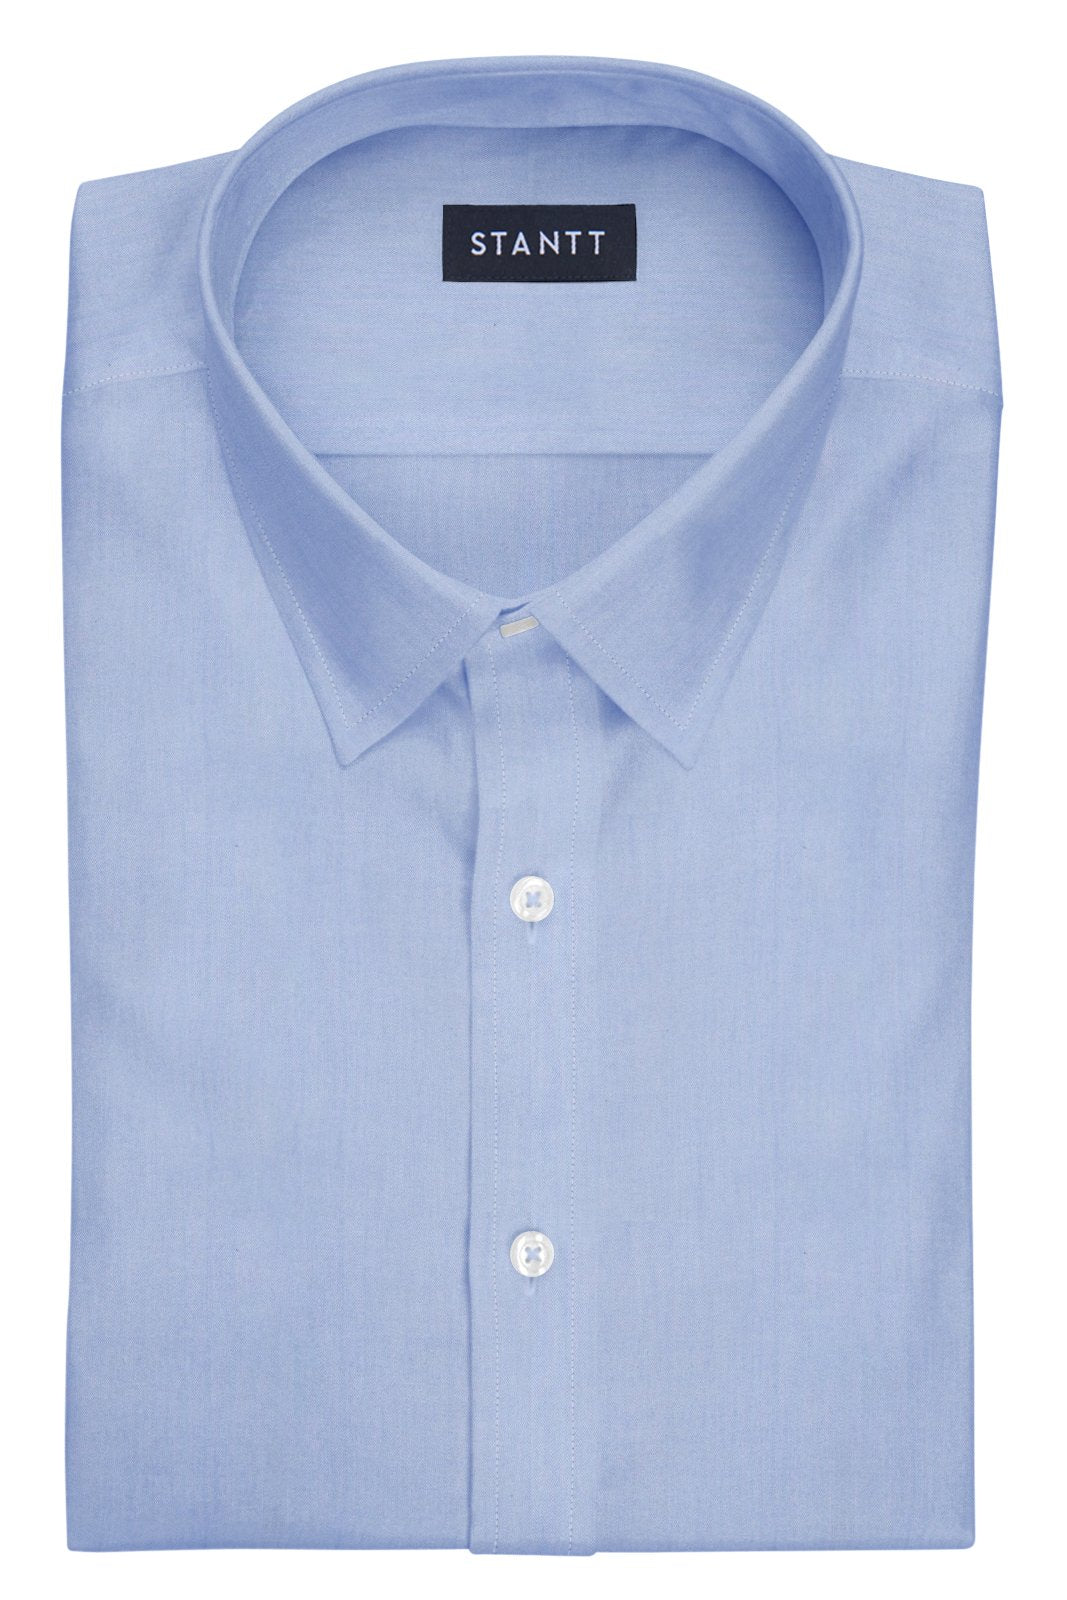 Wrinkle-Resistant Light Blue Twill: Semi-Spread Collar, Barrel Cuff